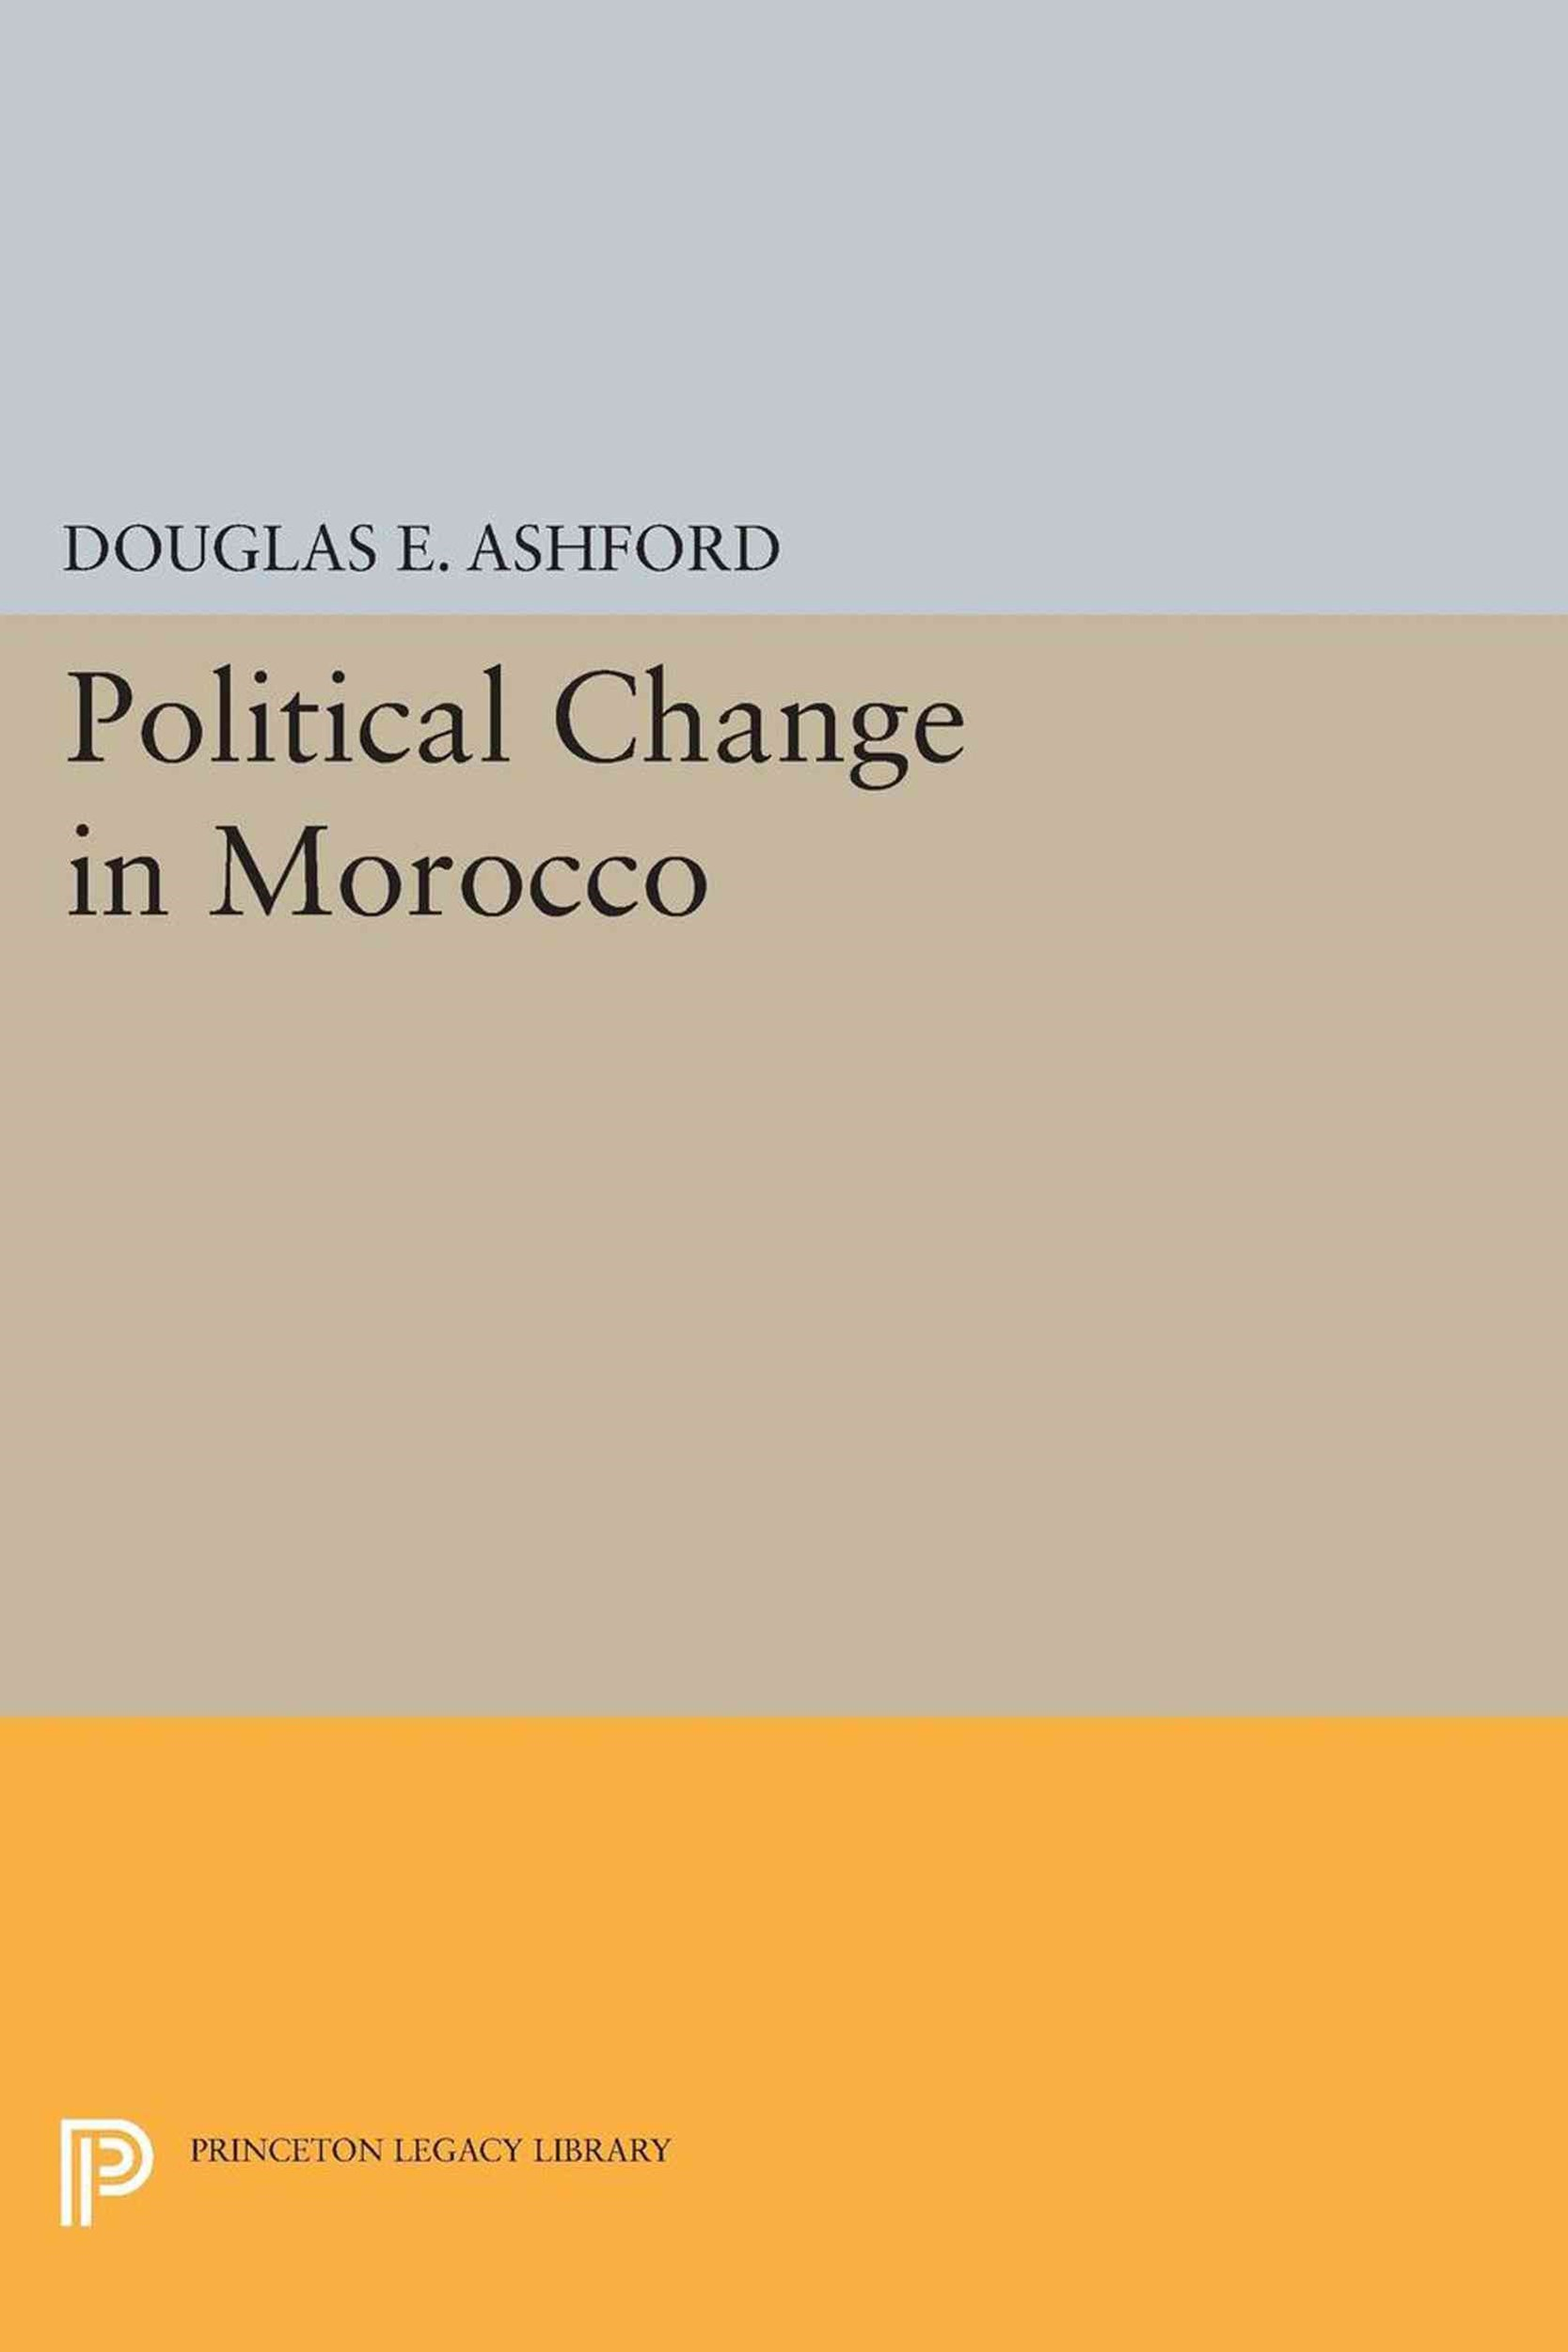 Political Change in Morocco